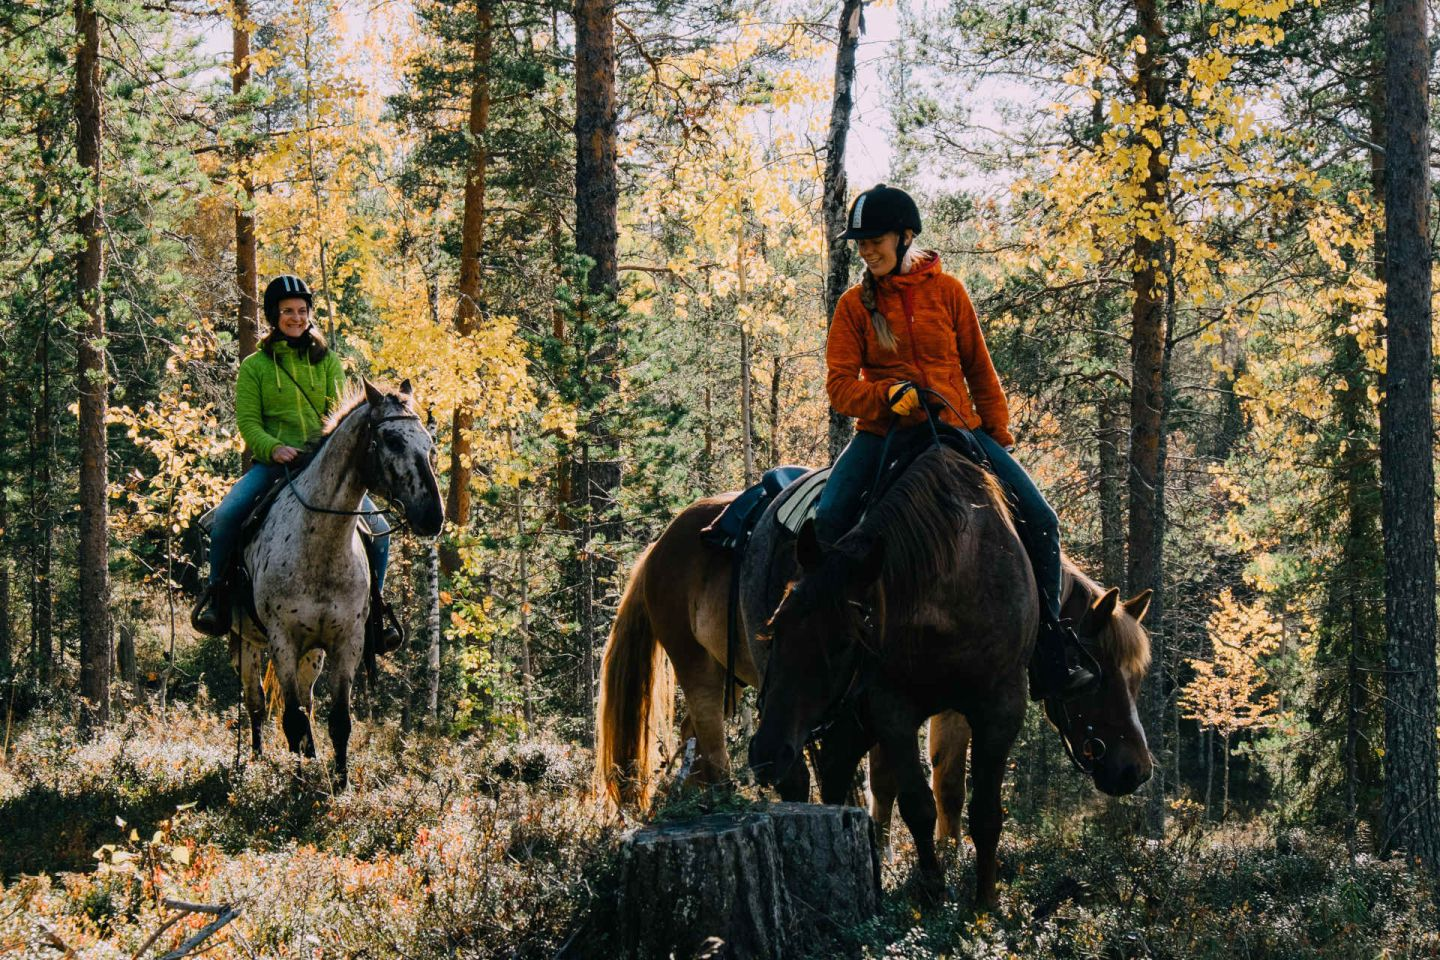 Riding horses through the forests of Pyhä-Luosto, Finland in summer